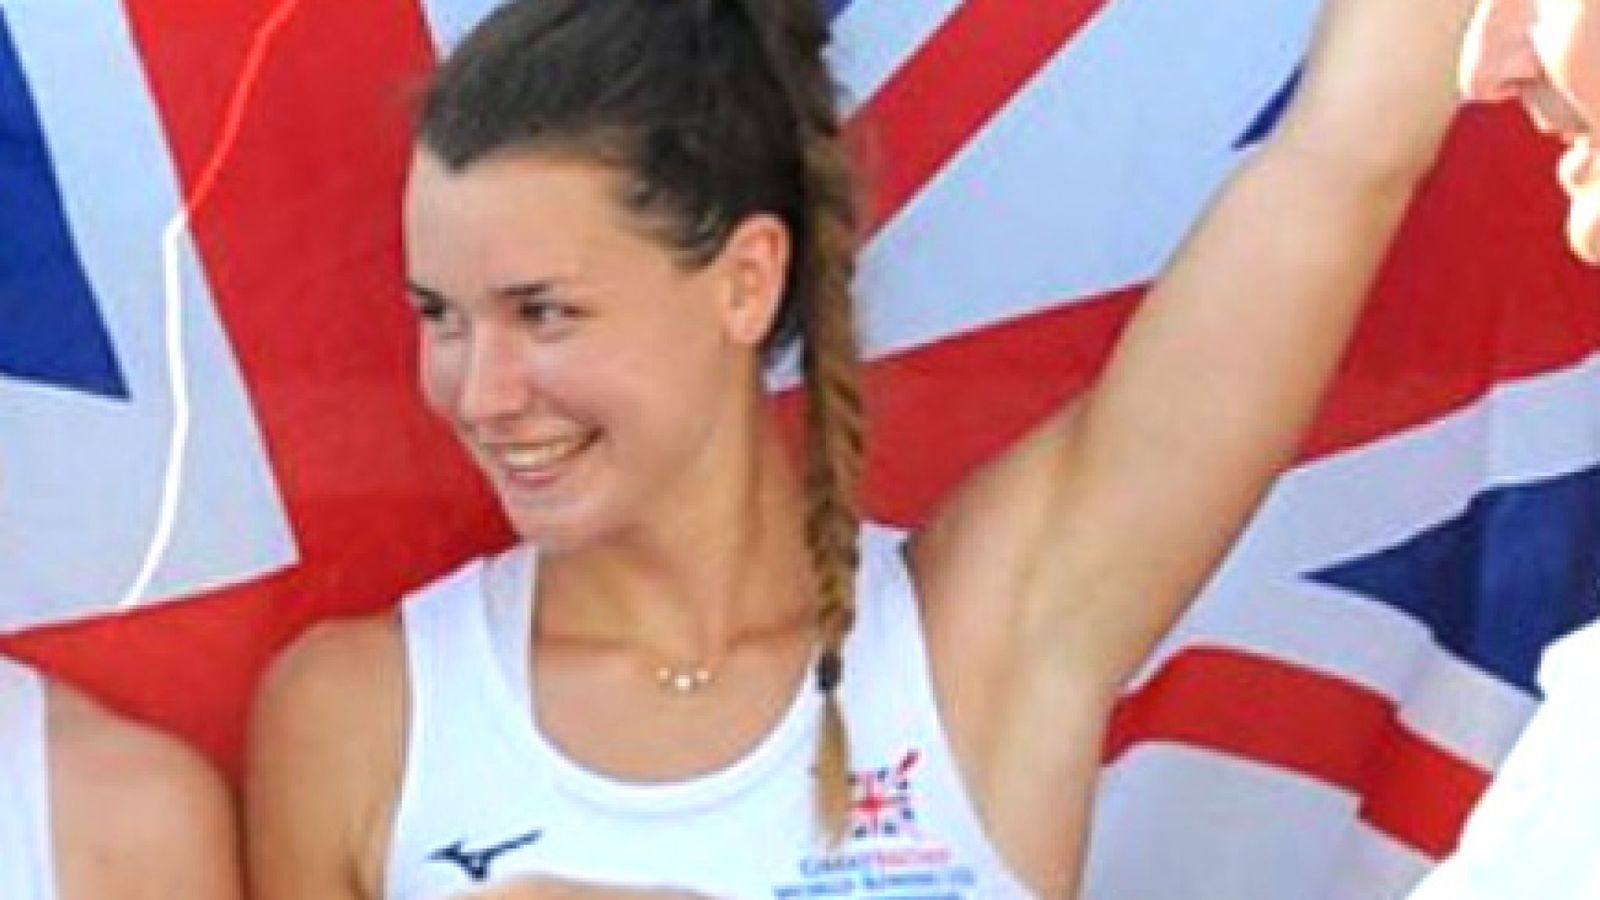 <a href='https://news.sky.com/story/anna-thornton-british-rower-in-serious-condition-after-accident-11567575'>Team GB rower, 21, 'in coma' after accident</a>